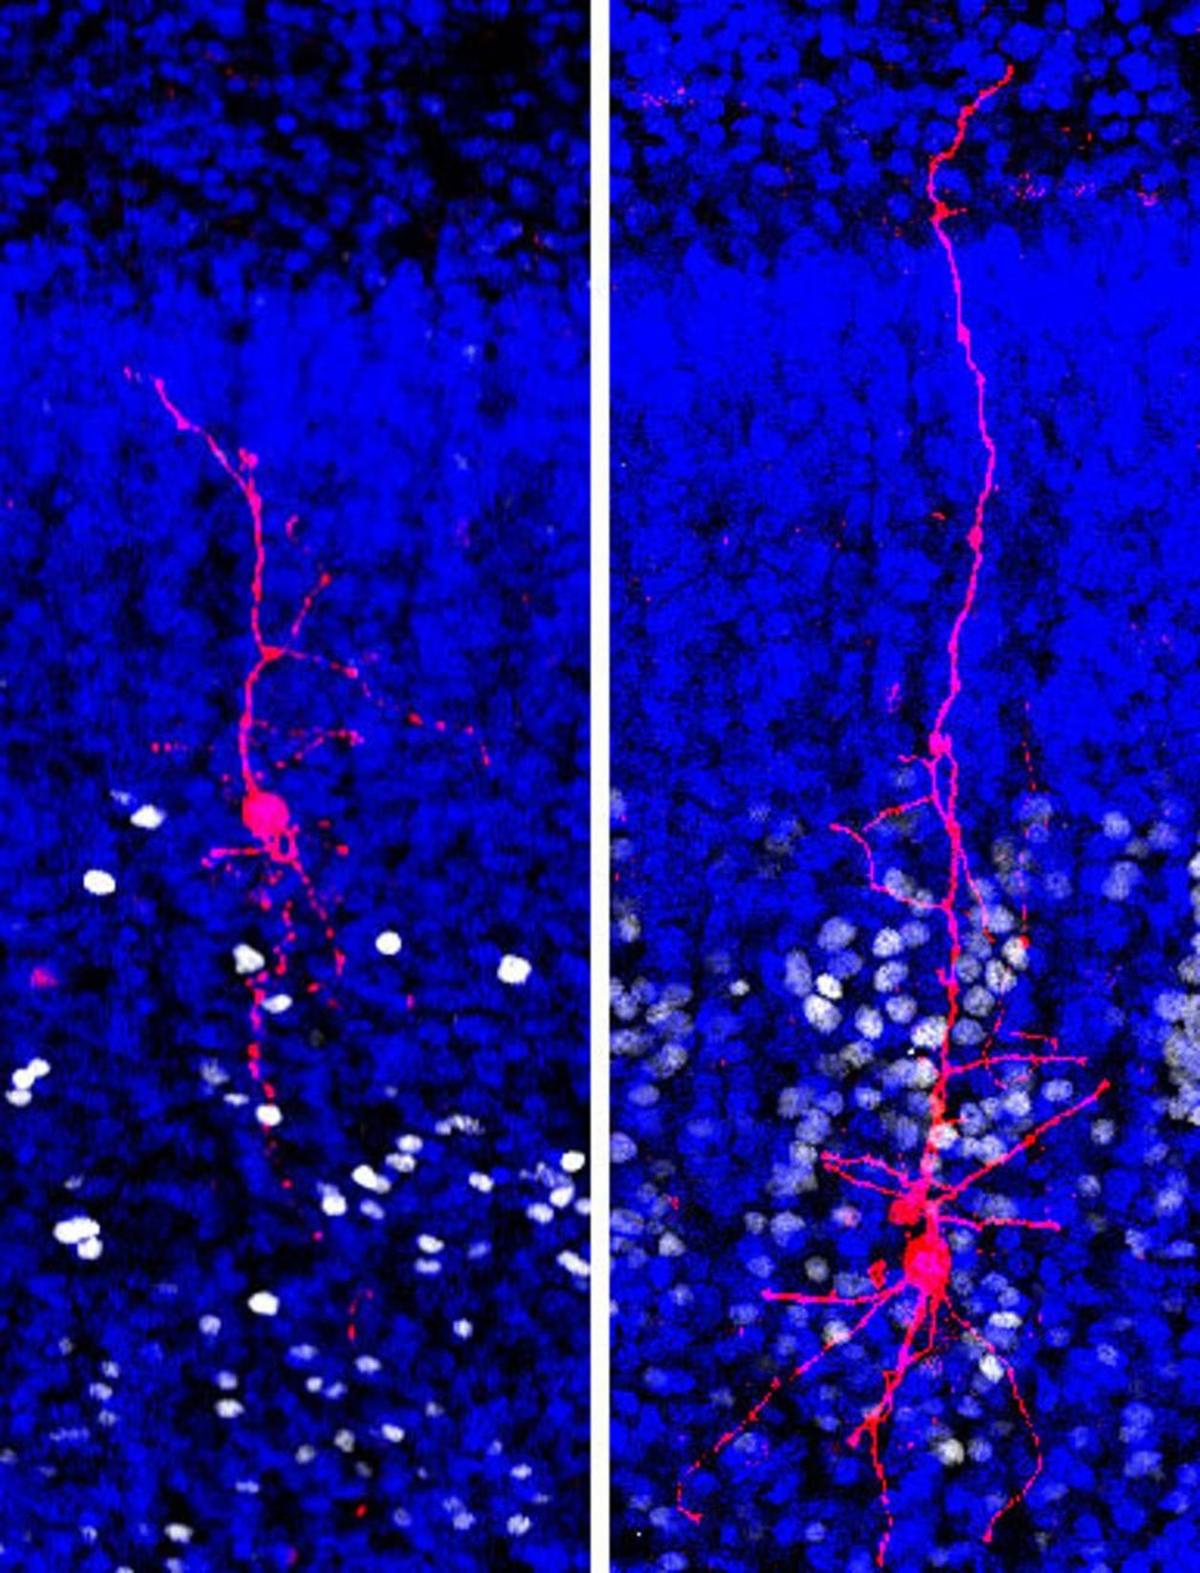 New autism research on single neurons suggests signaling problems in brain circuits